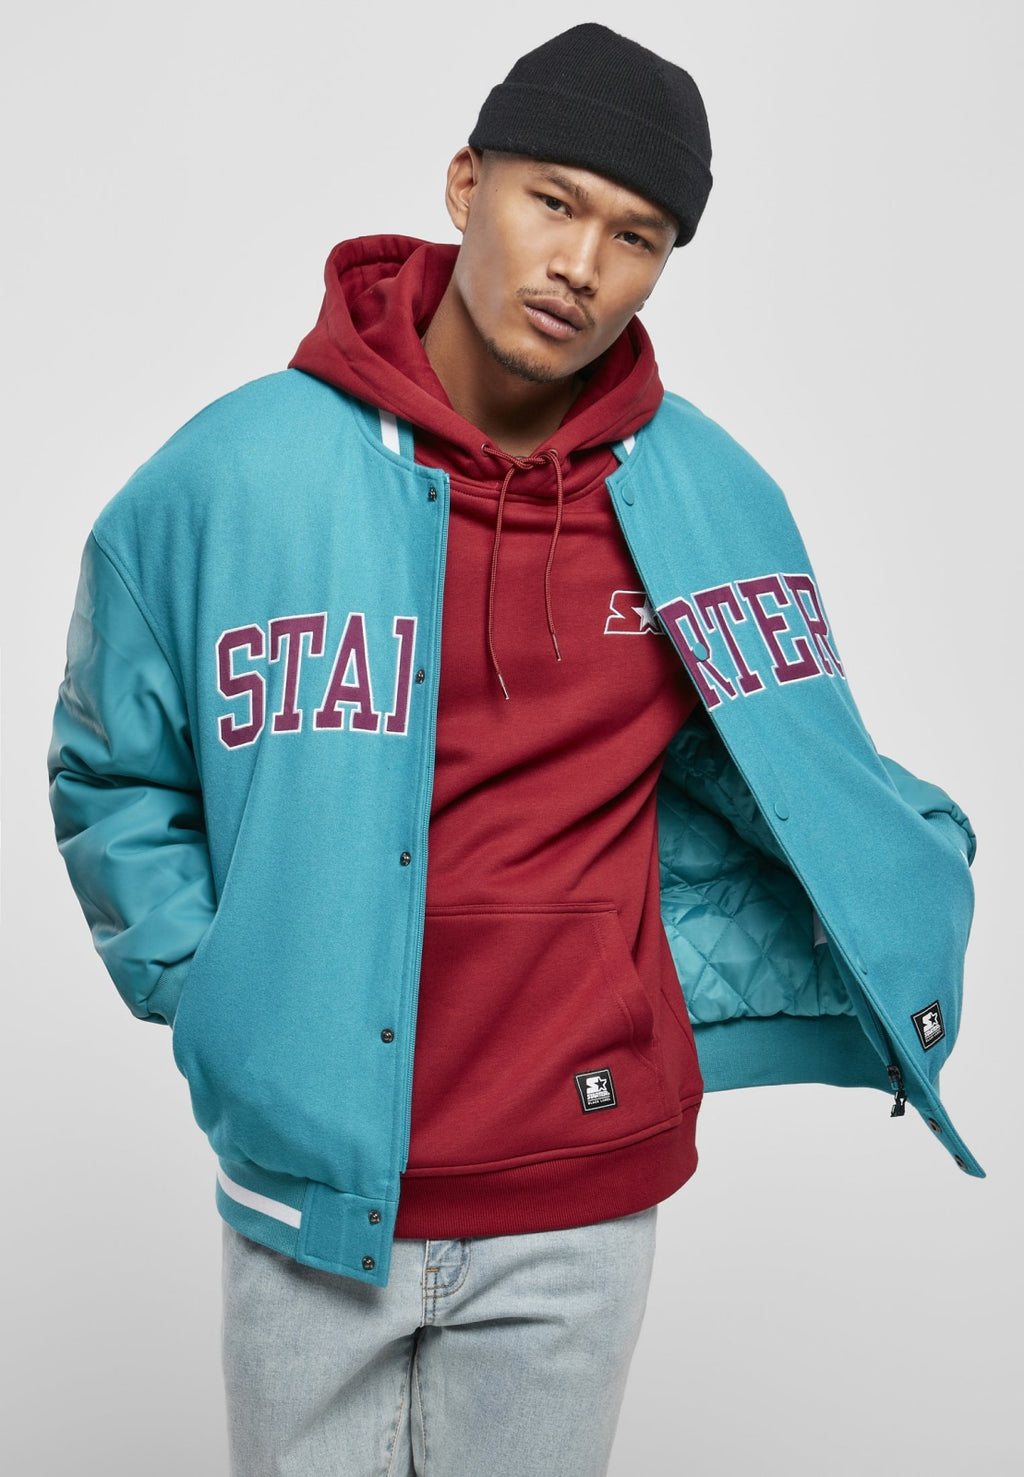 Starter Team Authentic Oldschool College Jacket (3 Colors!) Lake Blue / s Jacket Starter